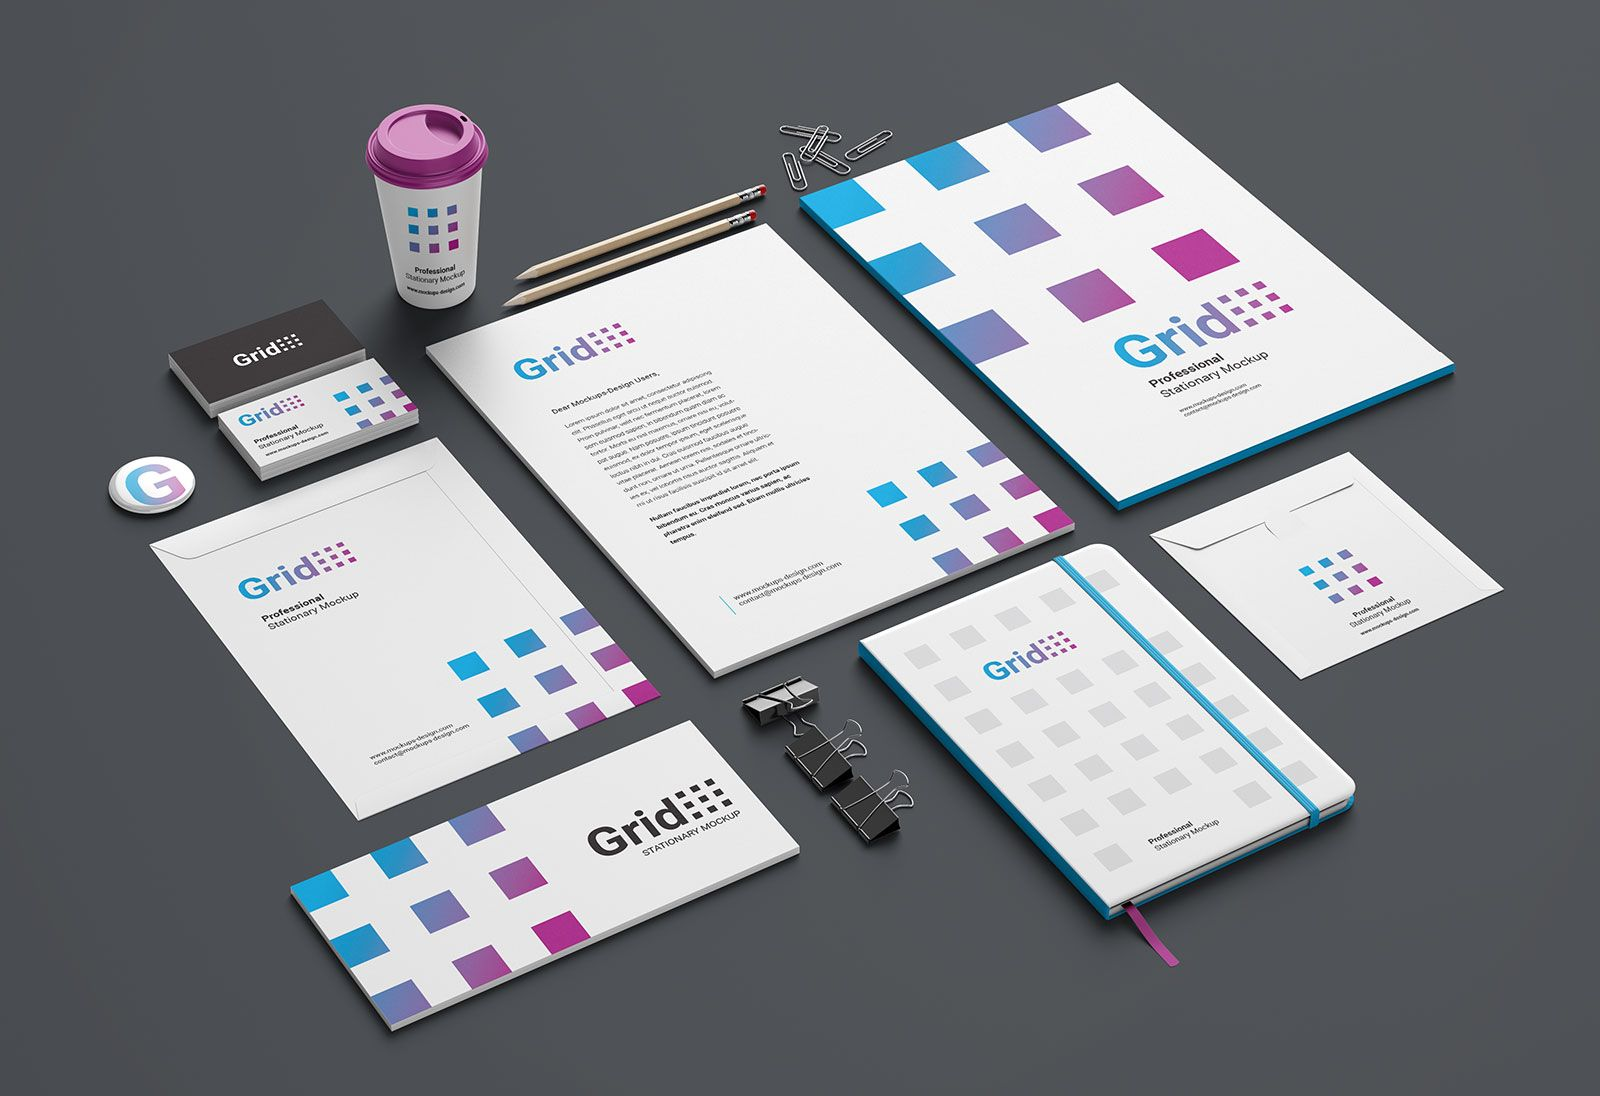 free premium stationery mockup set for corporate identity freebies business card corporate cup display envelope free graphic design identity letter mockup